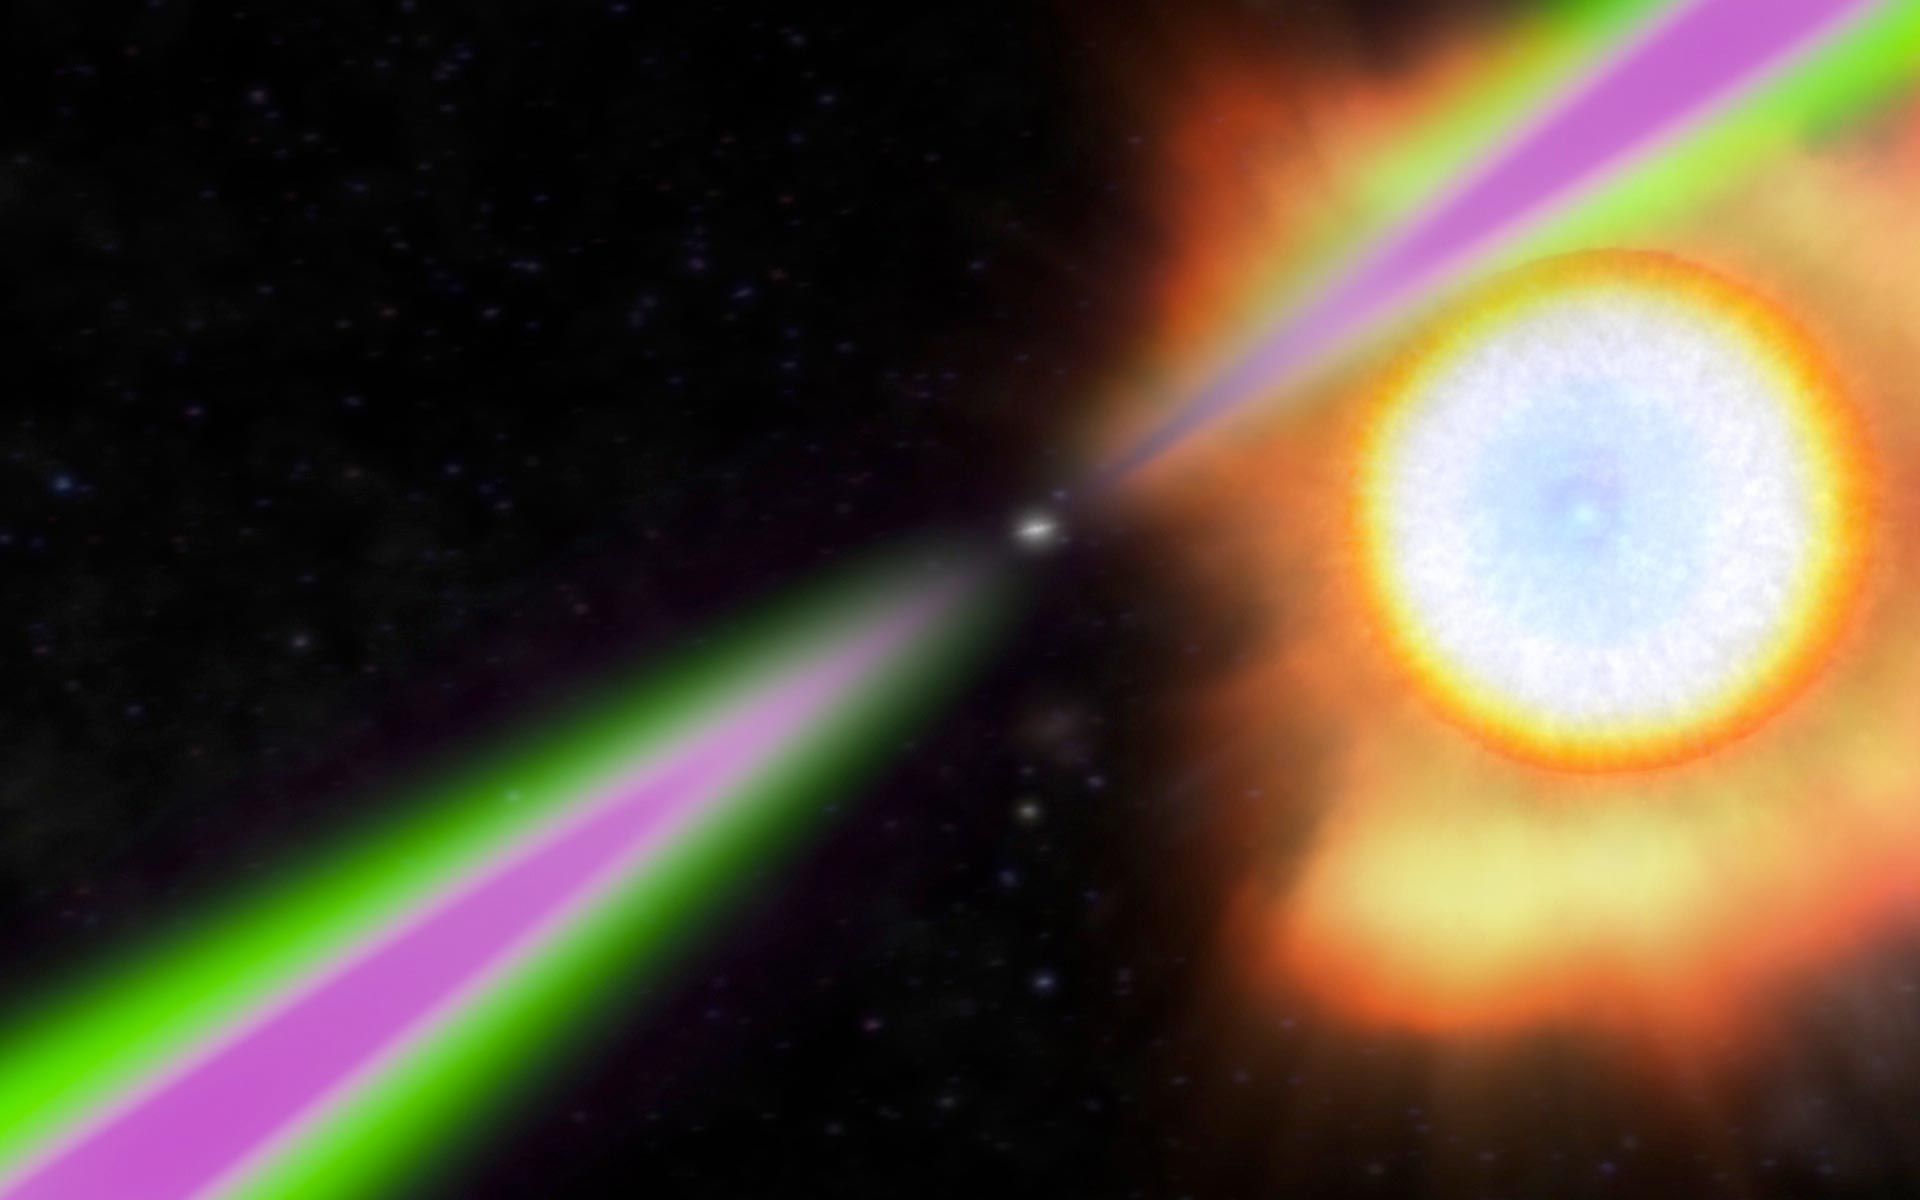 Powerful Pulsating Gamma Rays Emitted From Neutron Star Rotating an Incredible 707 Times a Second - SciTechDaily